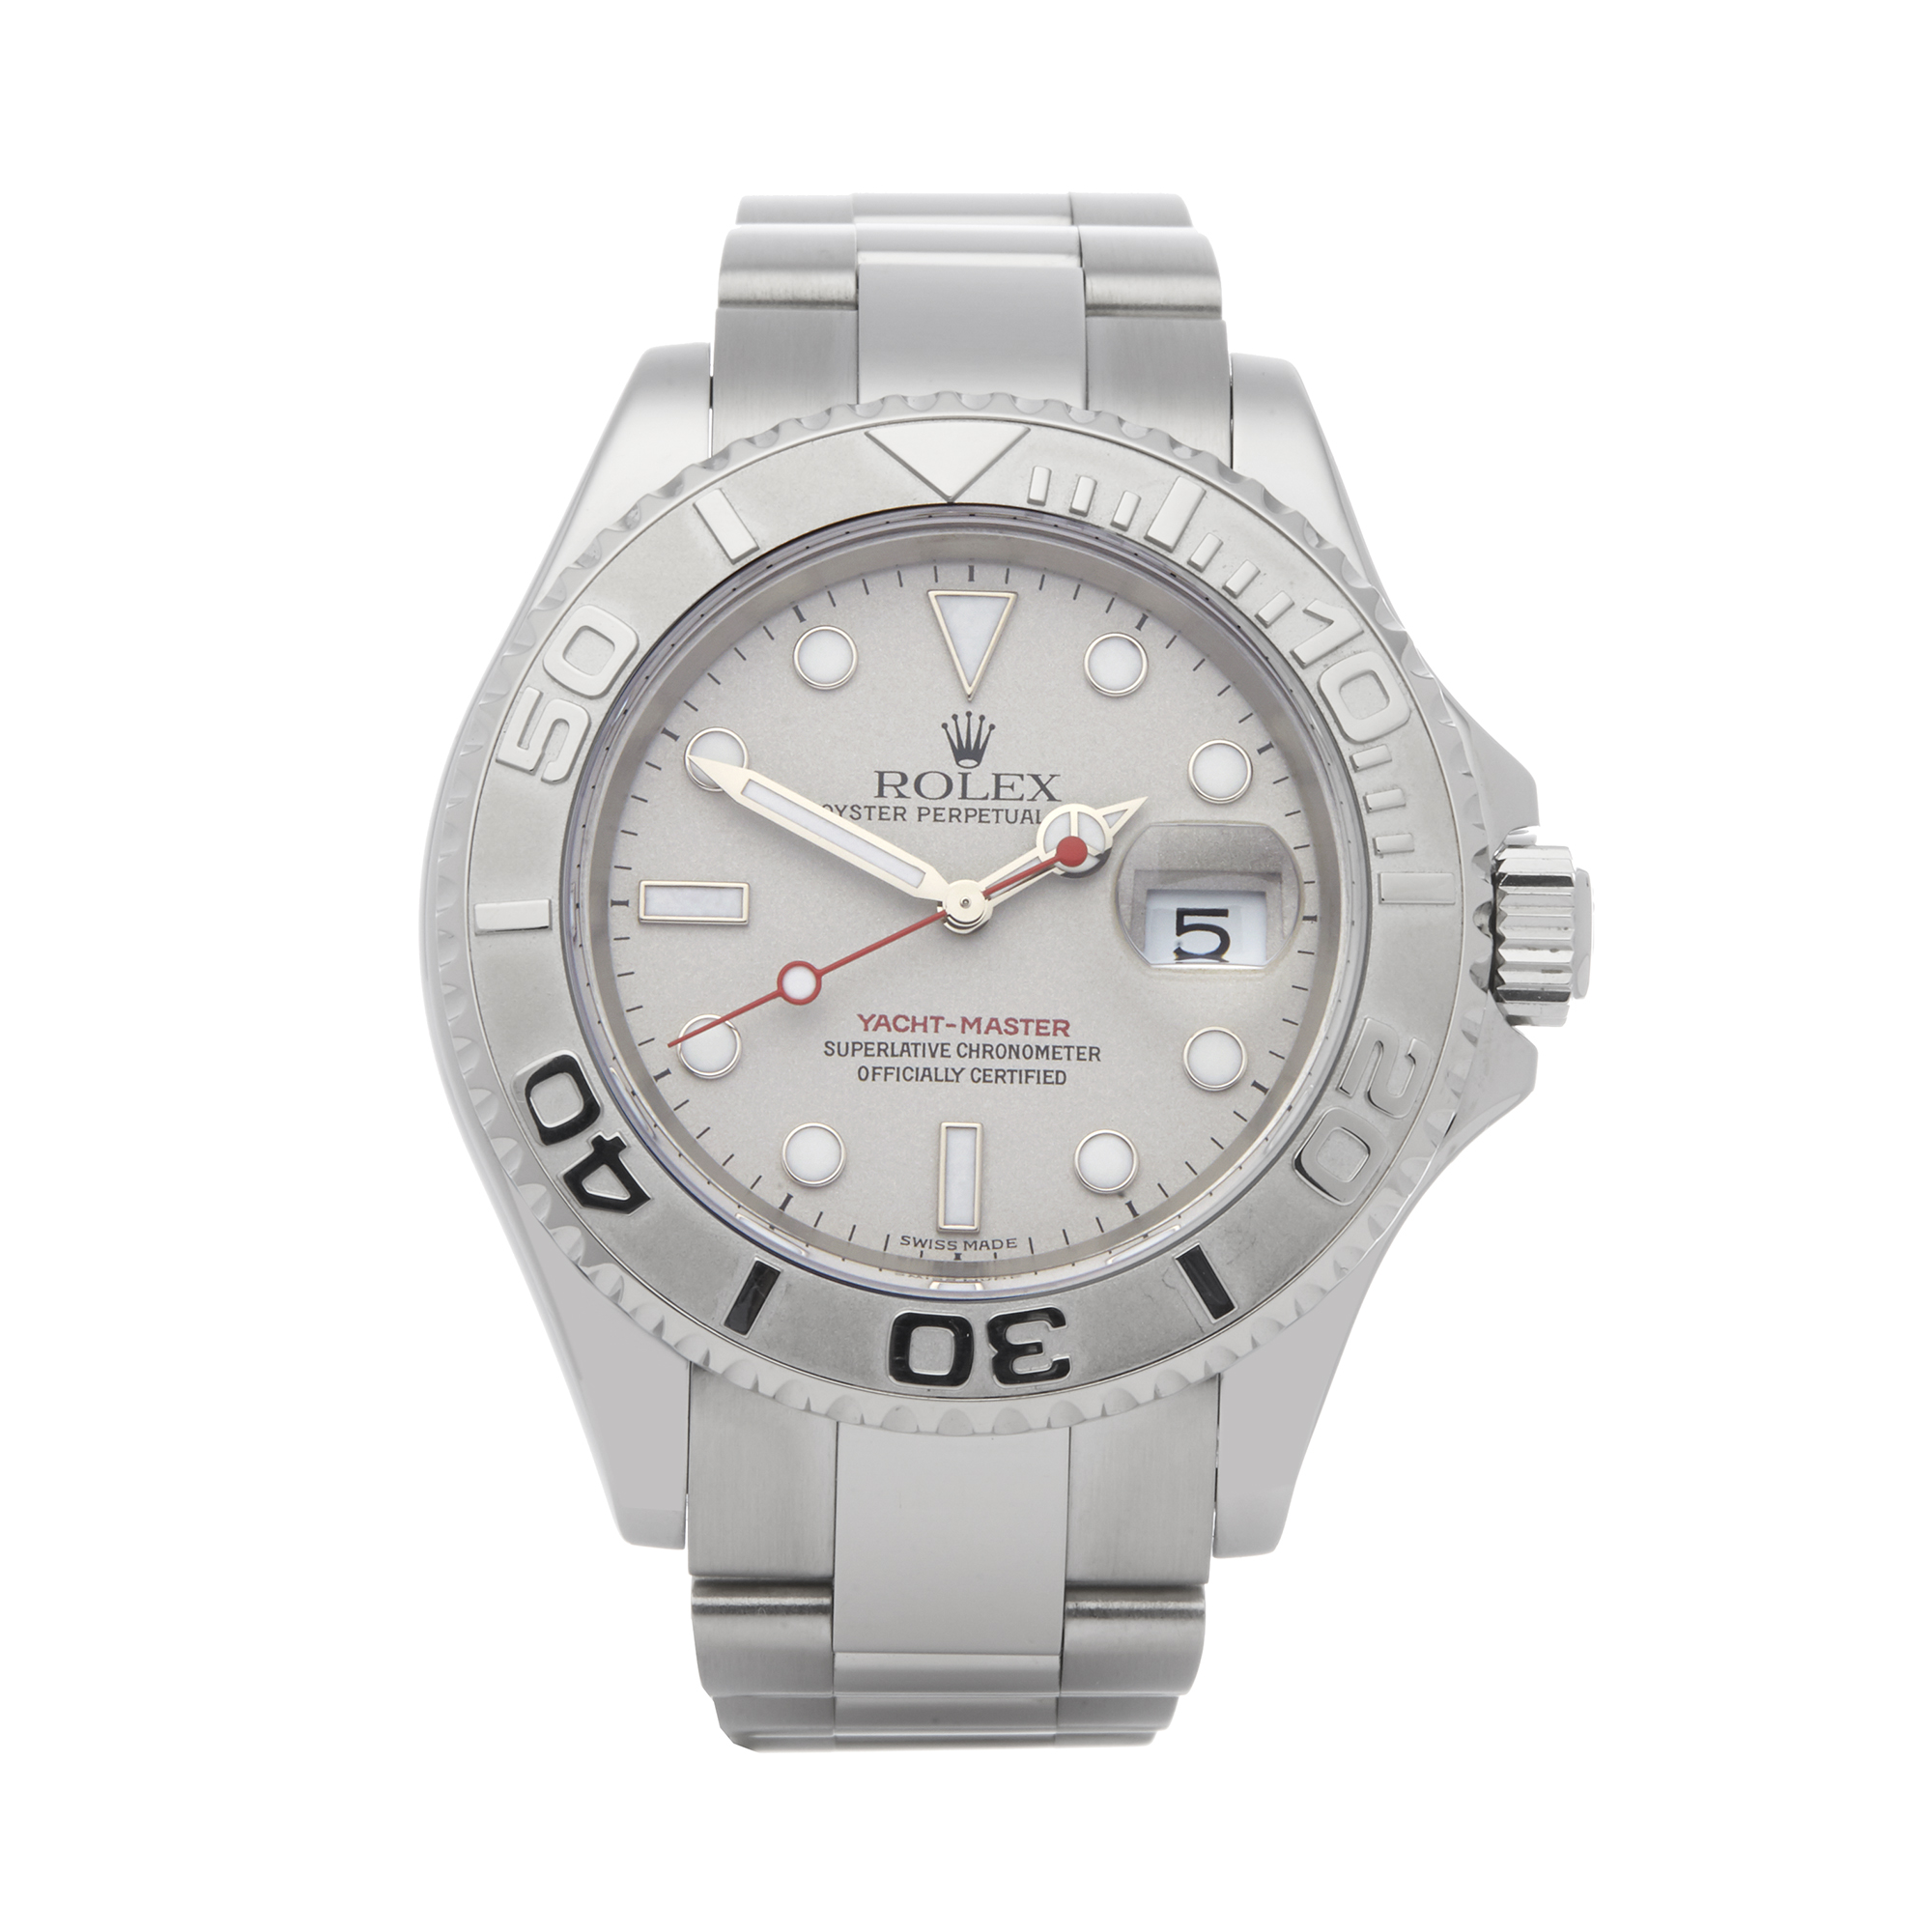 Rolex Yacht-Master 40 16622 Men's Stainless Steel Watch - Image 10 of 10